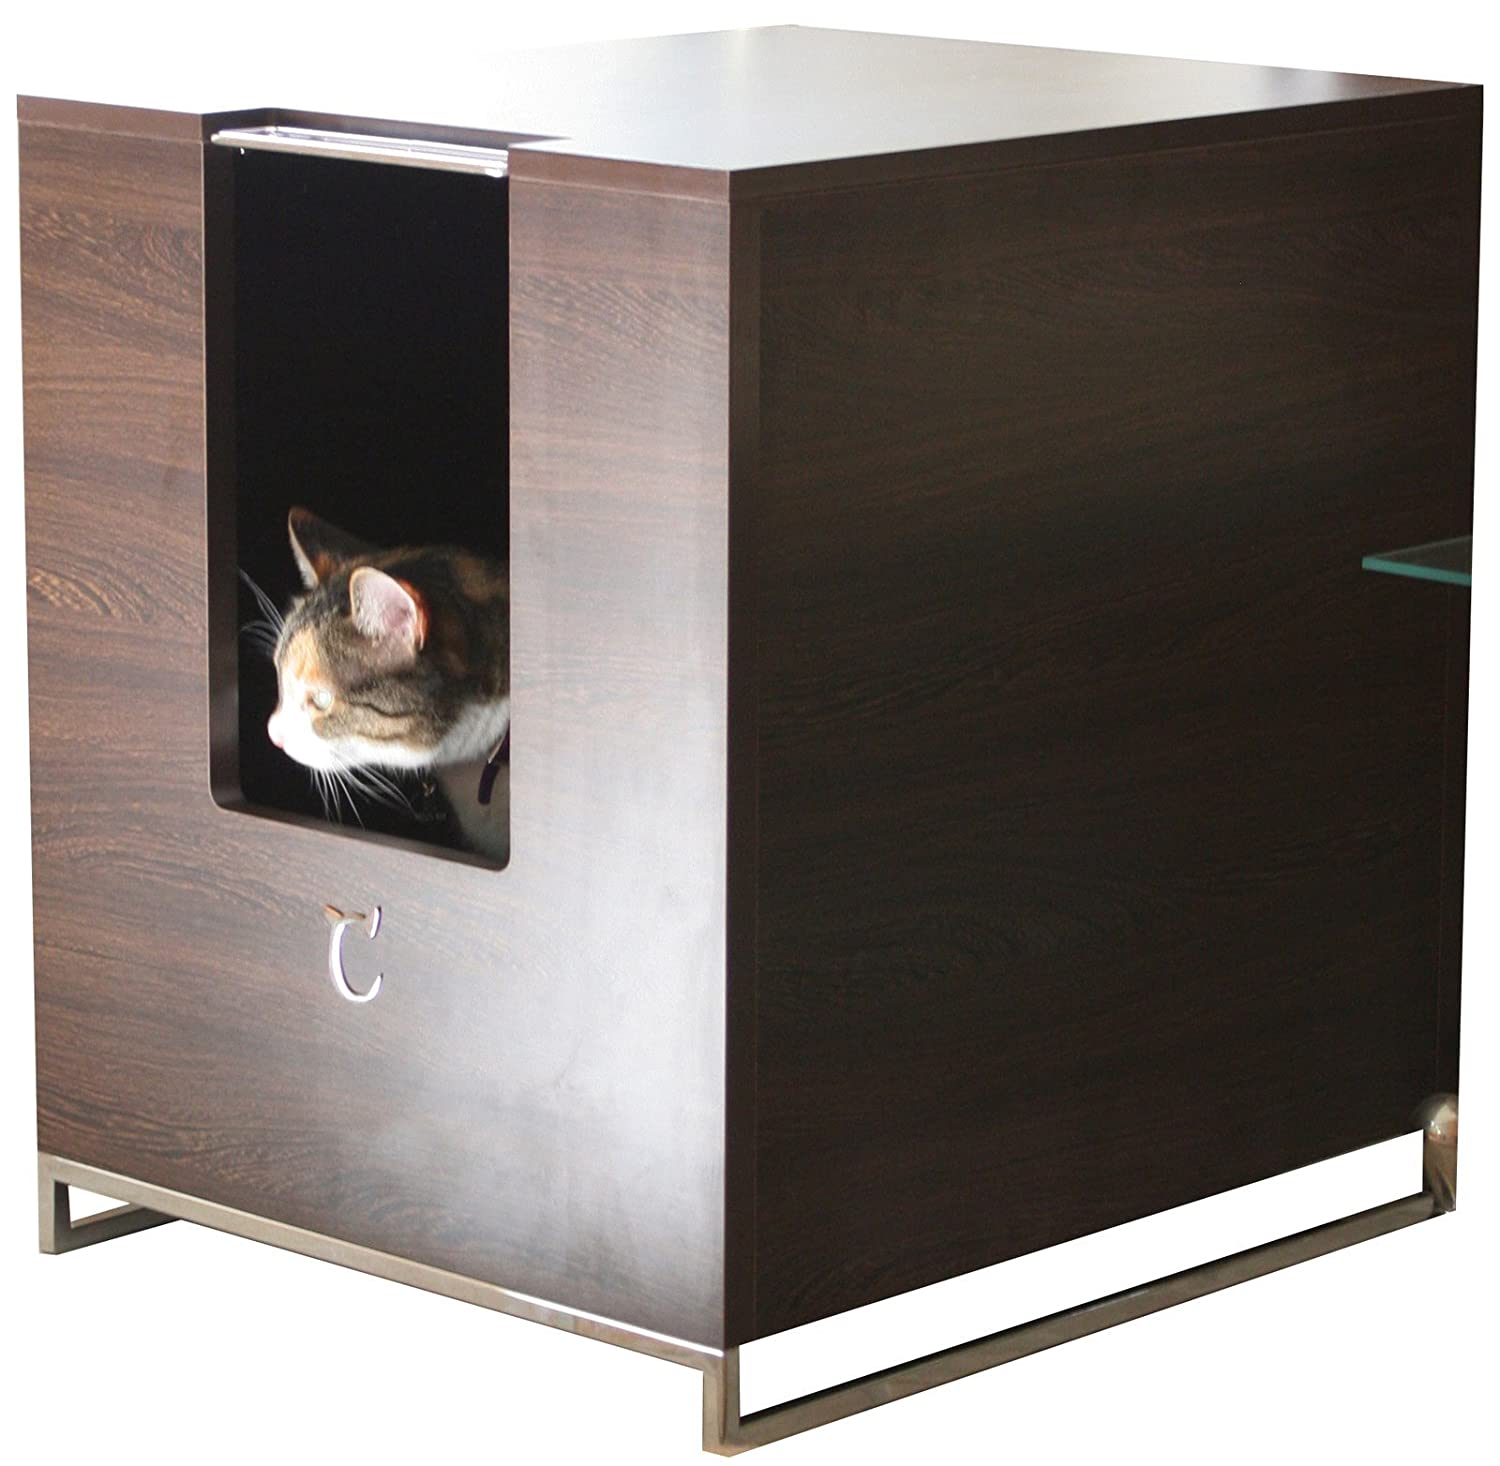 amazoncom  modern cat designs litter box hider  brown  cat  - amazoncom  modern cat designs litter box hider  brown  cat houses andcondos  pet supplies